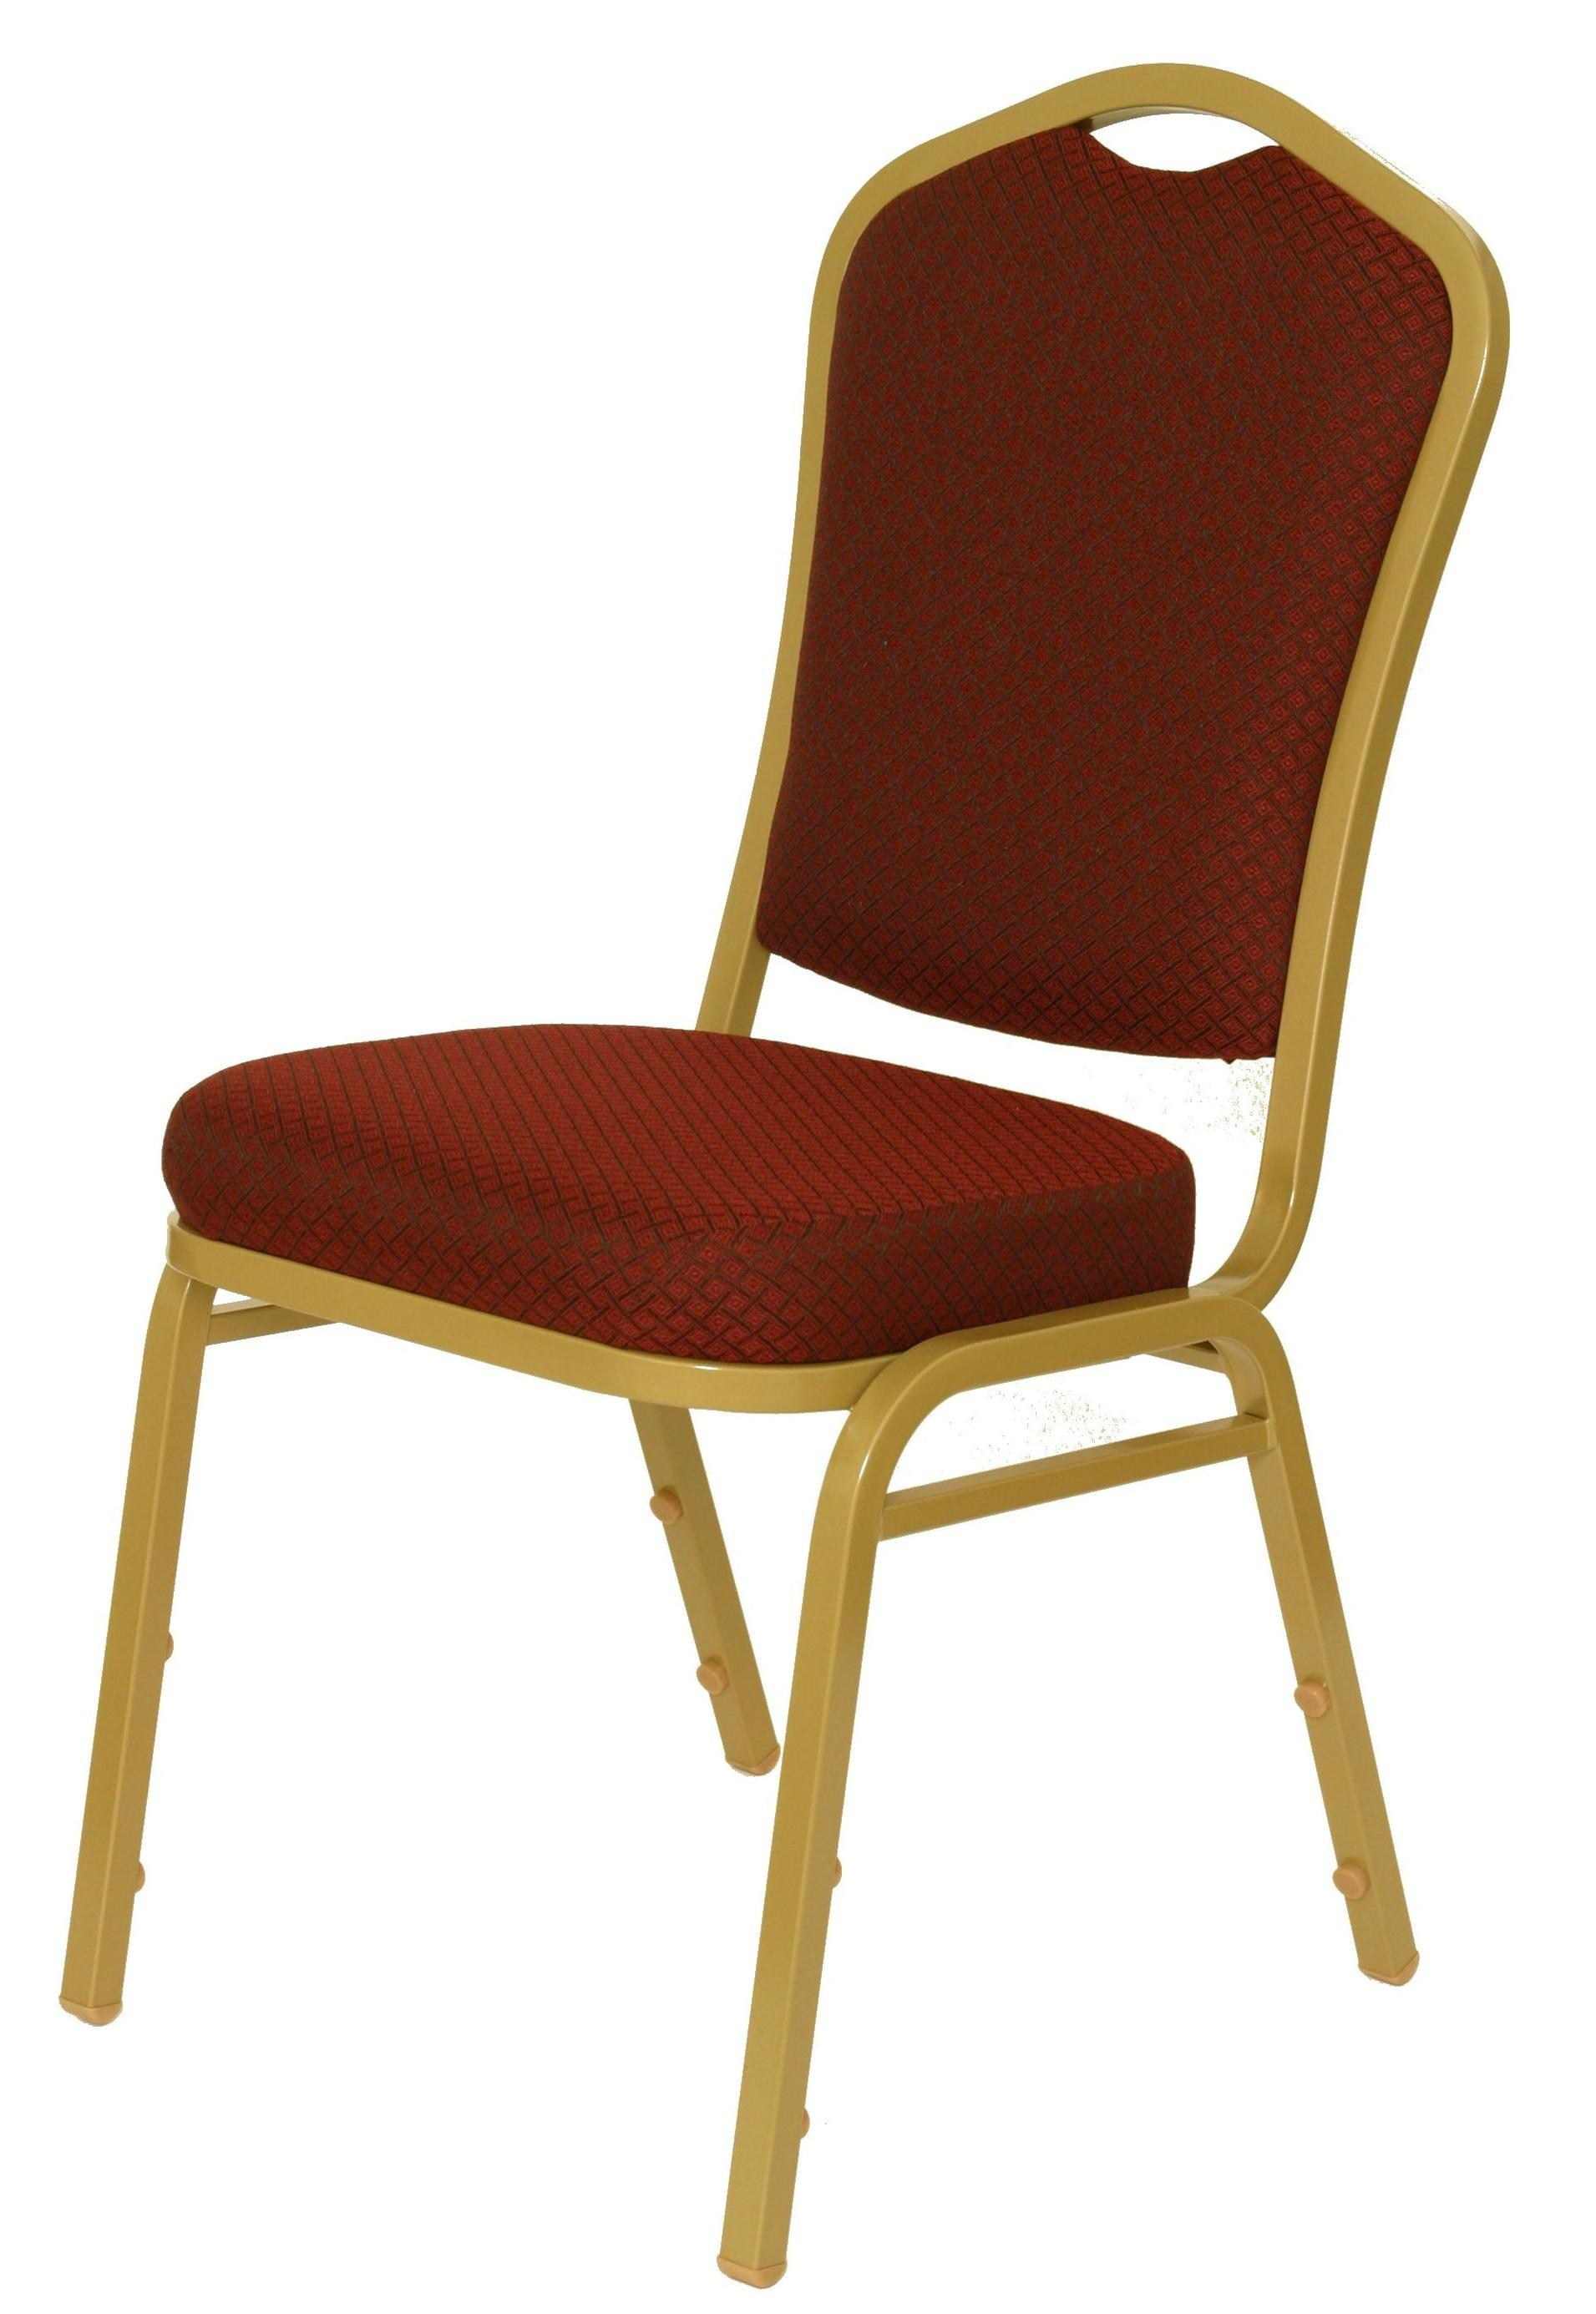 Folding Wood Chairs Help I Ve Got Ugly Chairs Part 1